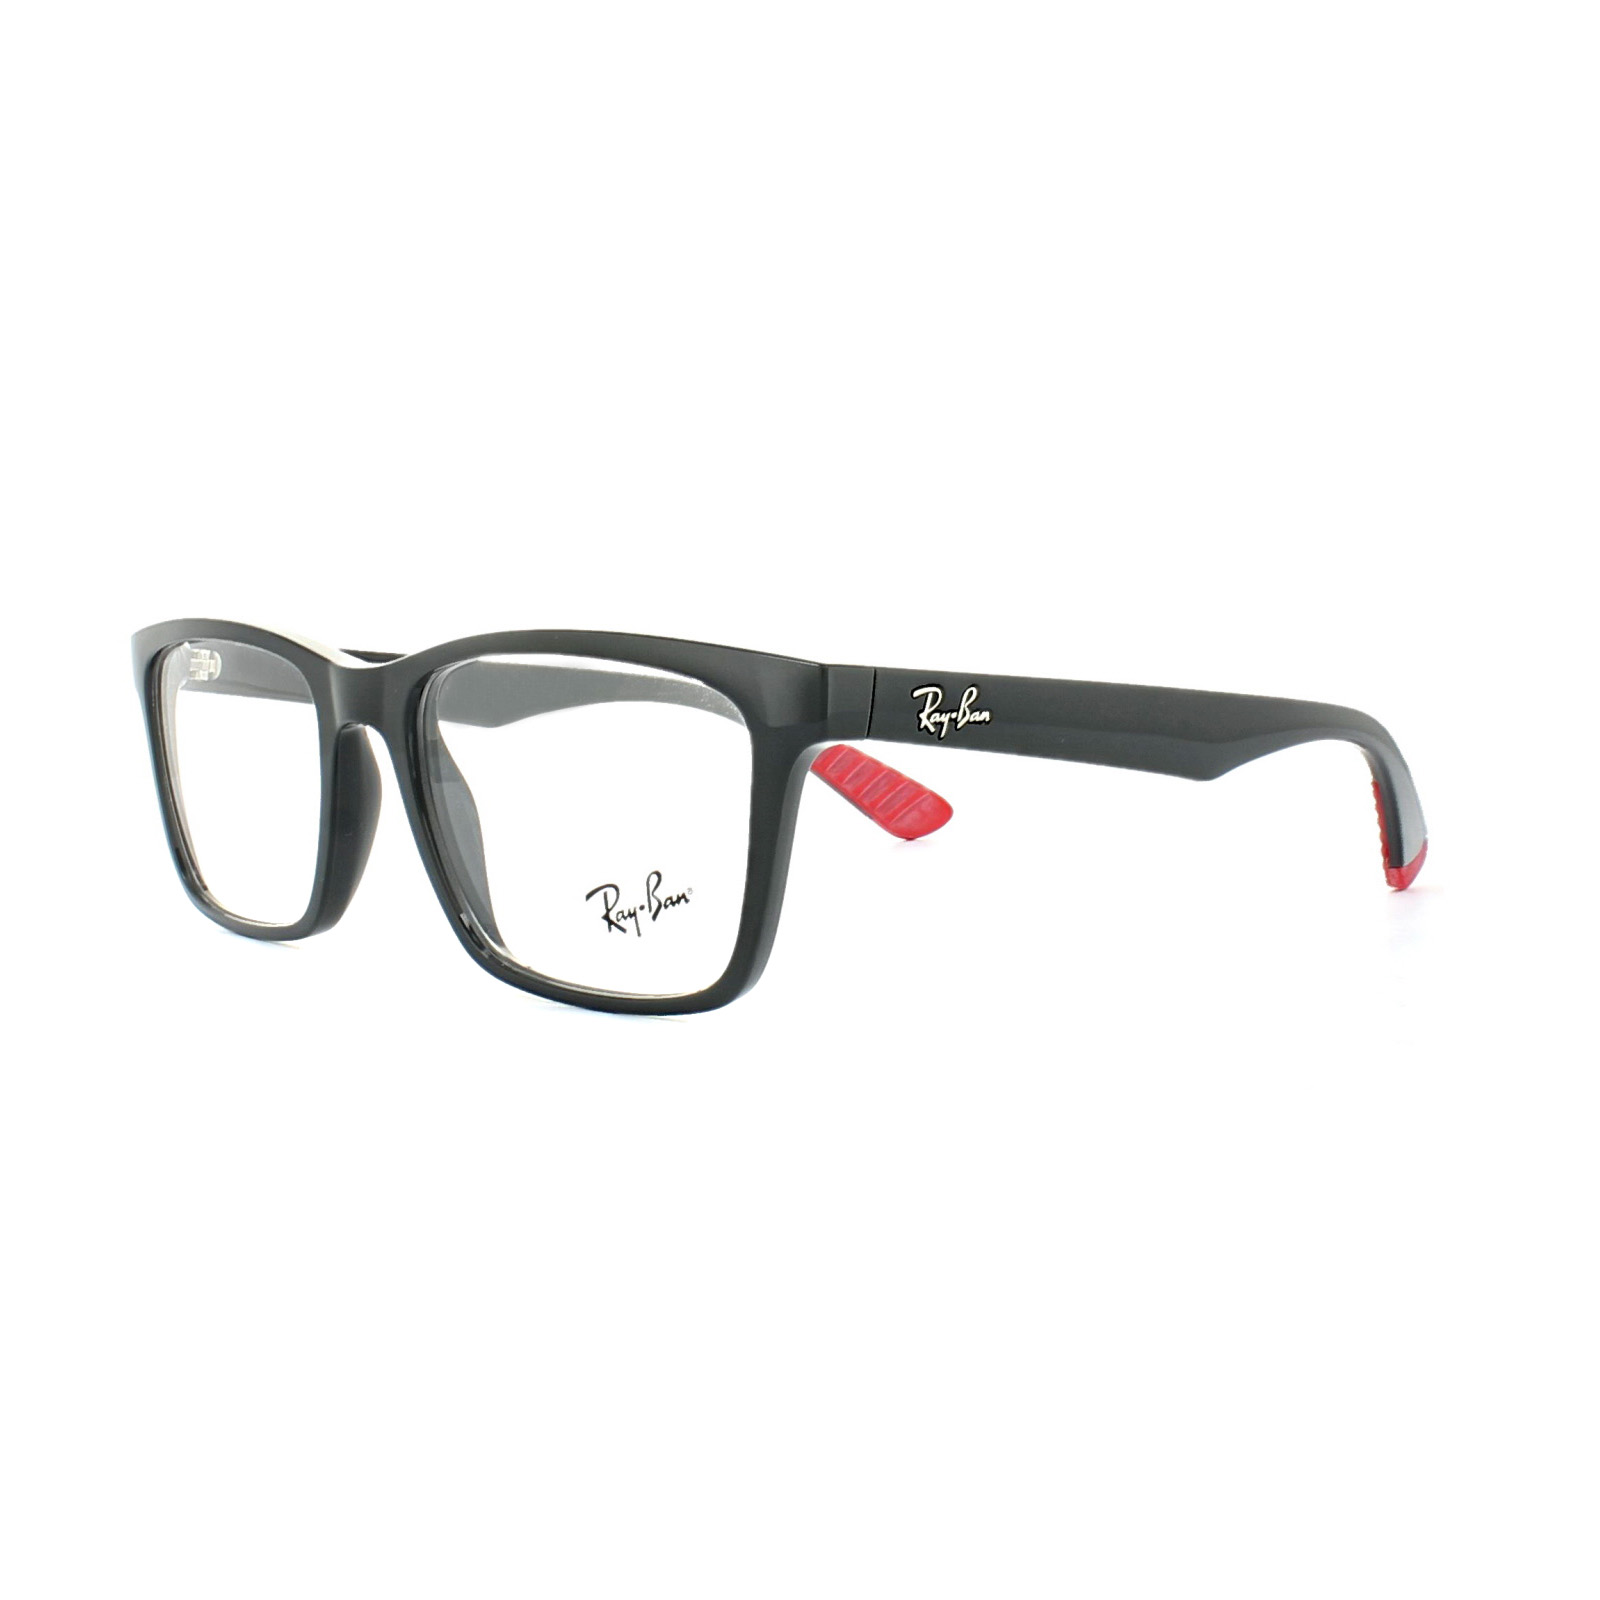 46e36295ff4 Ray-Ban Glasses Frames 7025 5418 Dark Grey 8053672243994